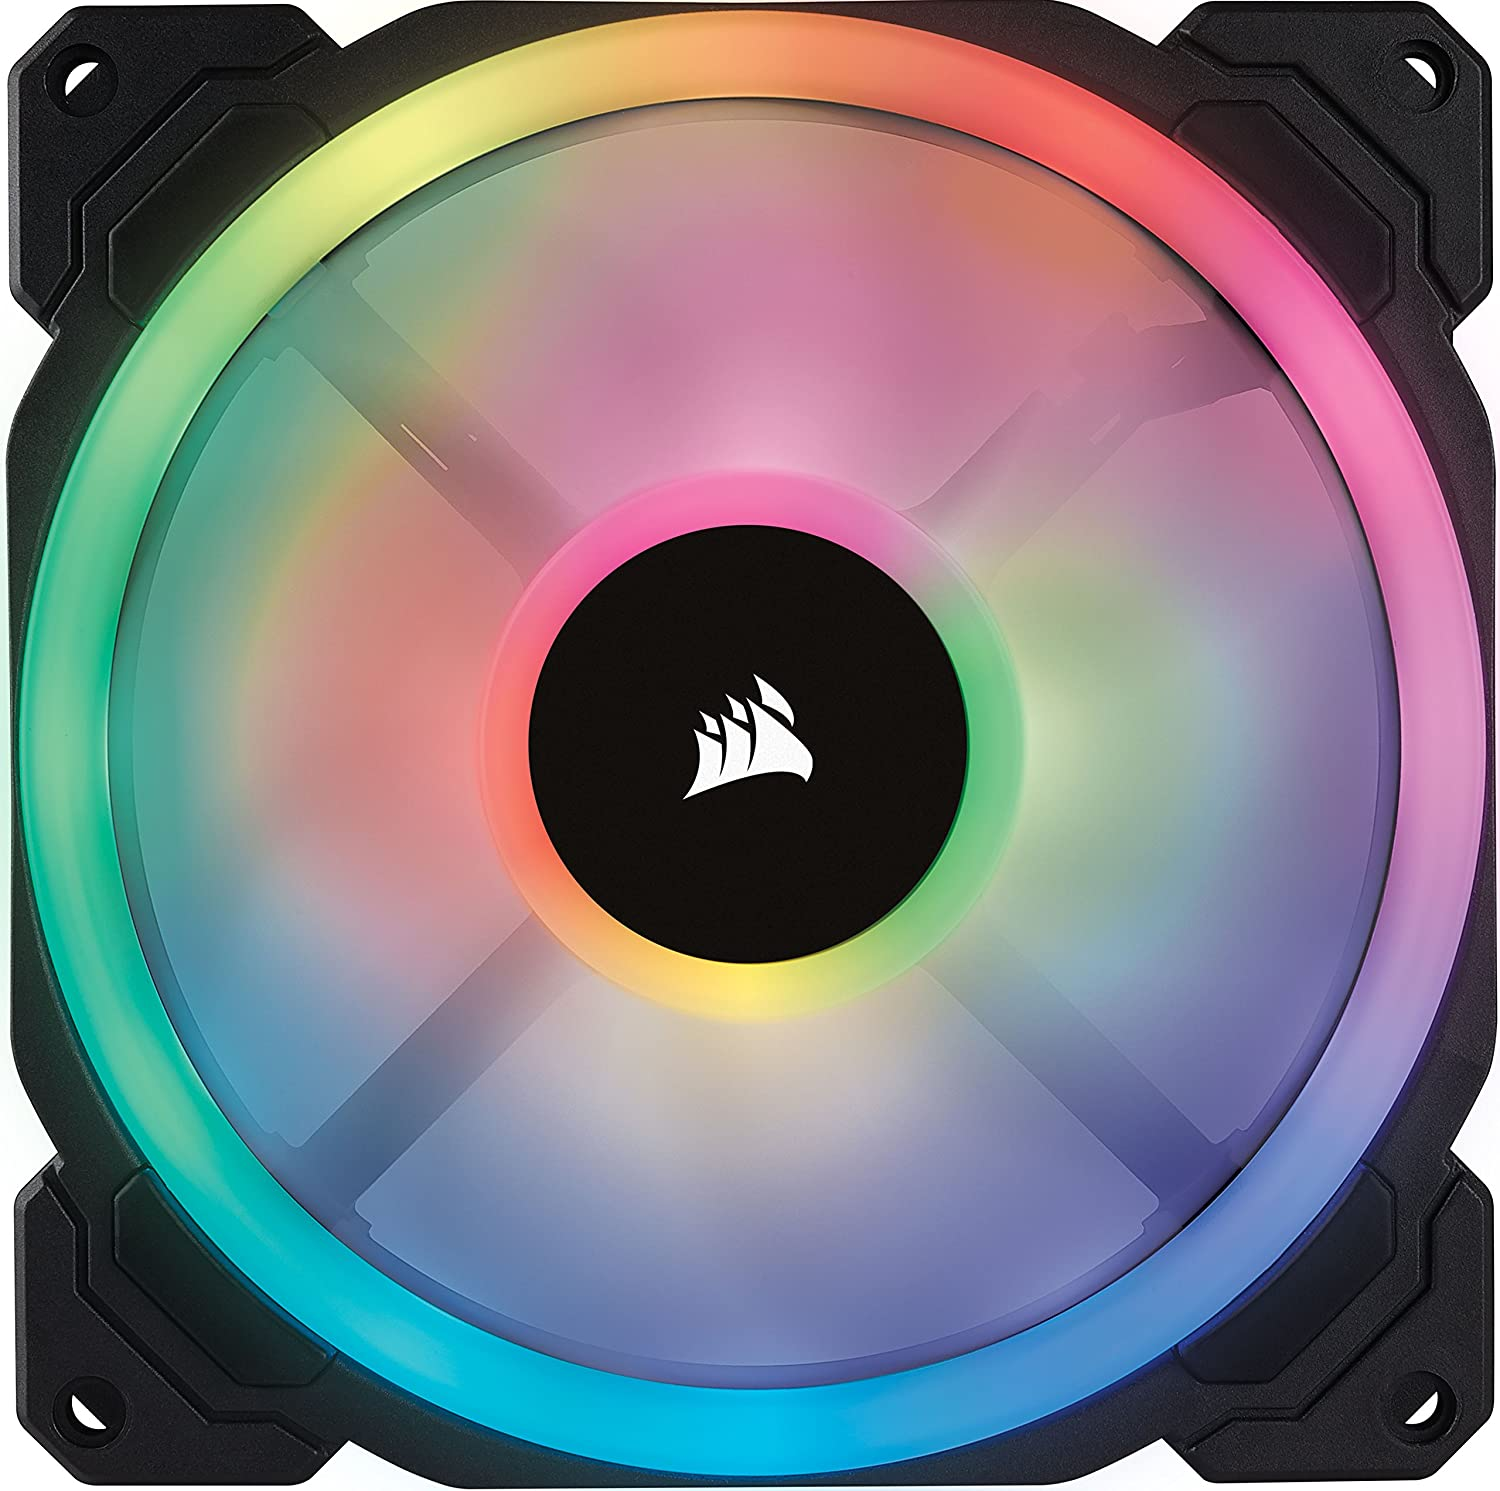 Corsair Ll Series Ll120 Rgb 120mm Dual Light Loop Wiring Two Fans In Led Pwm Fan Single Pack Computers Accessories